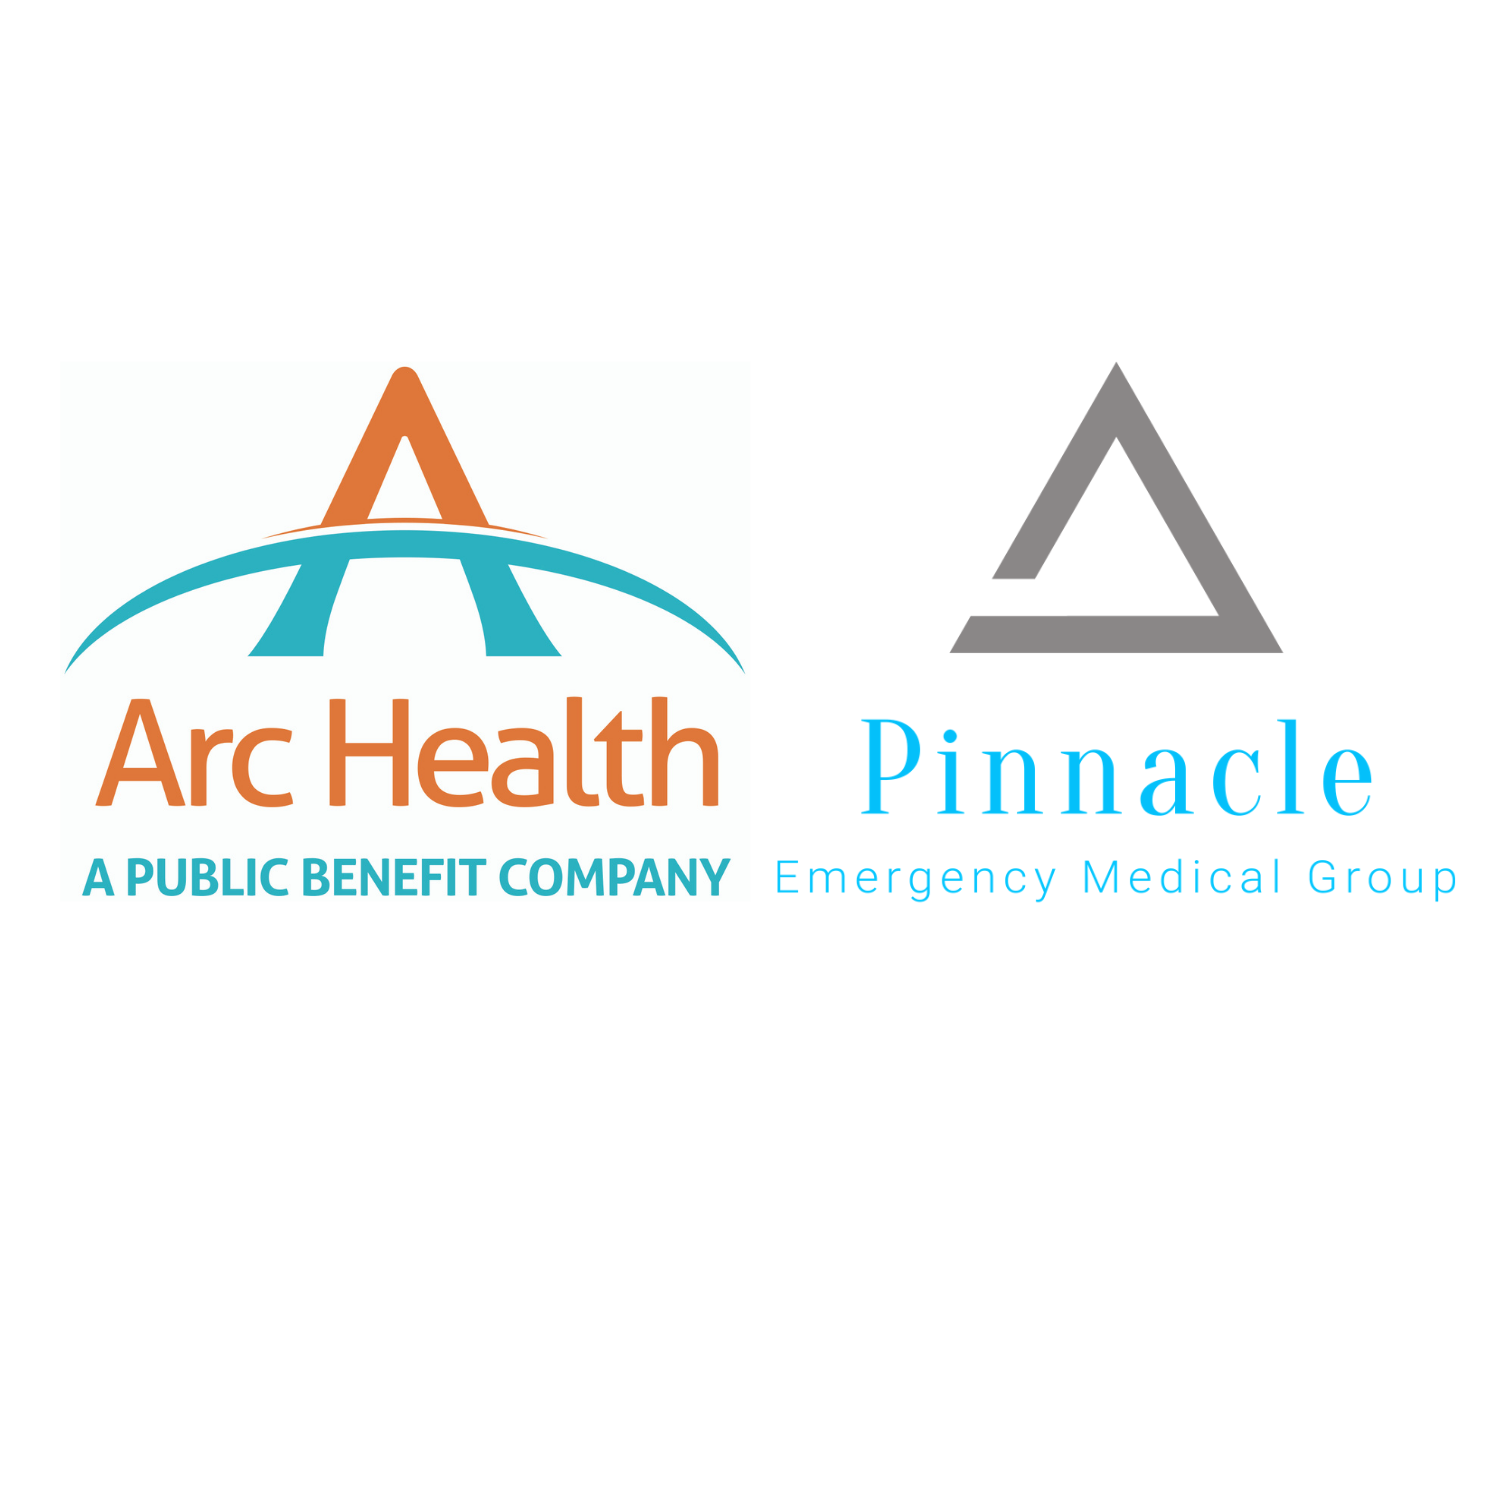 Arc Health Acquires Like-Minded Pinnacle Emergency Medical Group